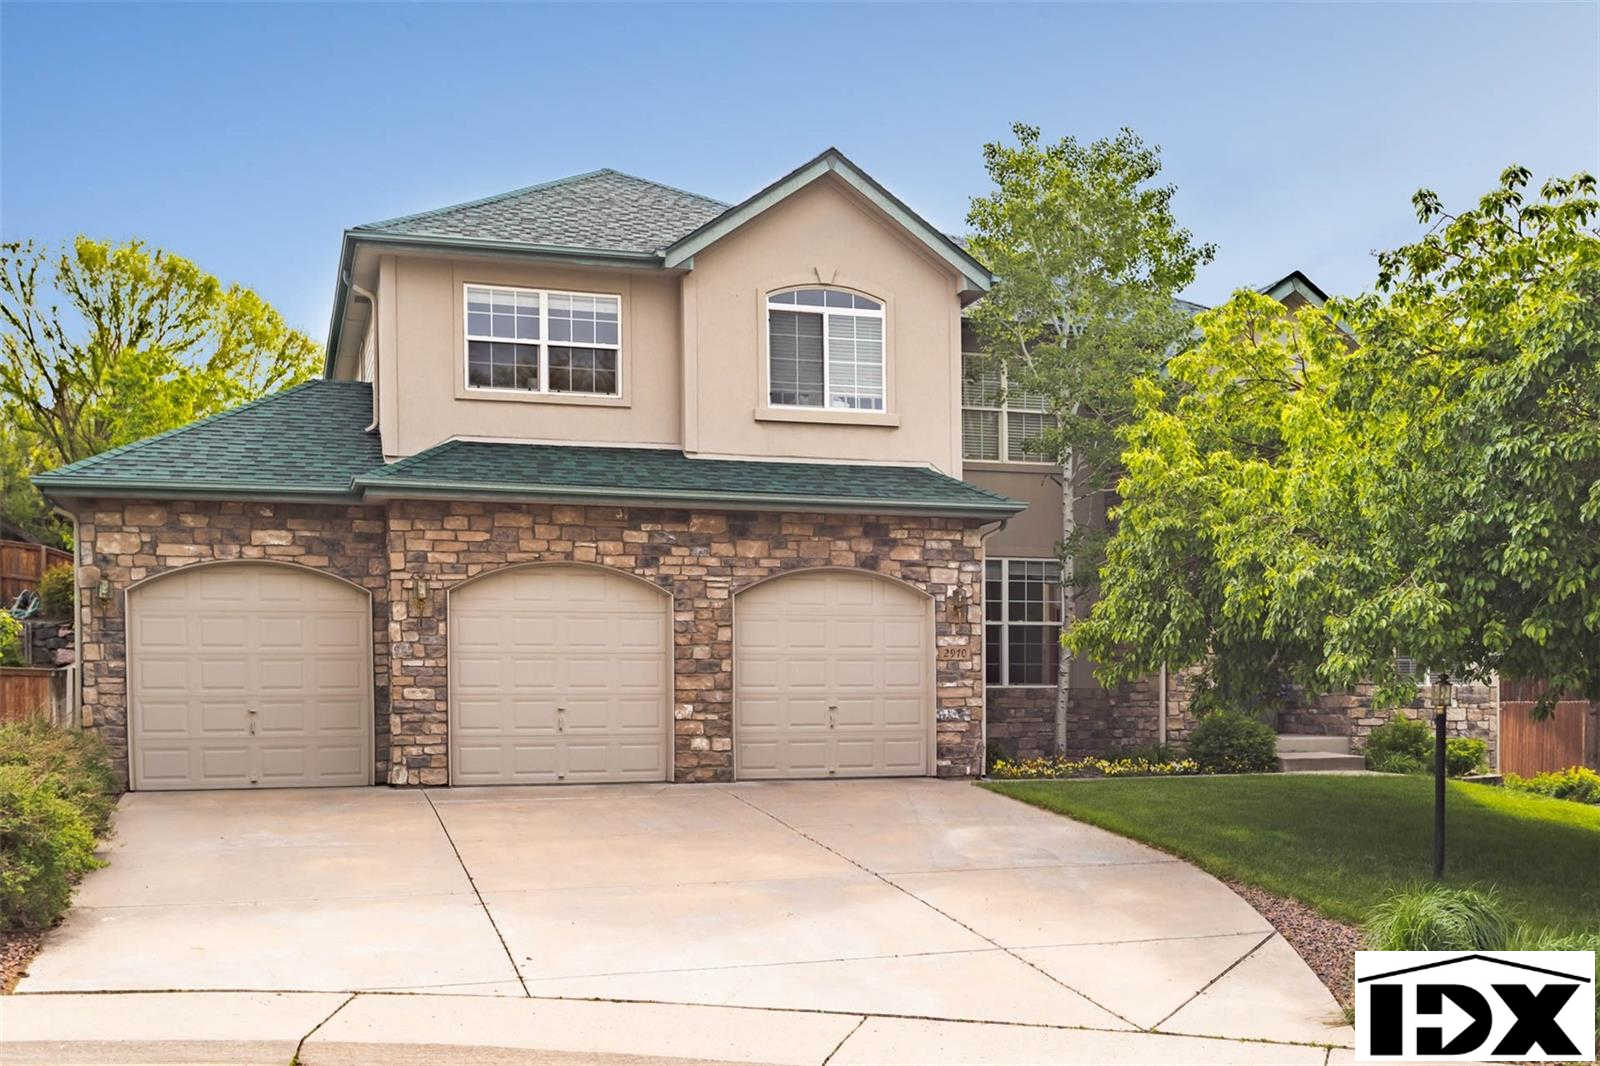 Video Tour  - 2970 South Newcombe Way, Lakewood, CO 80227